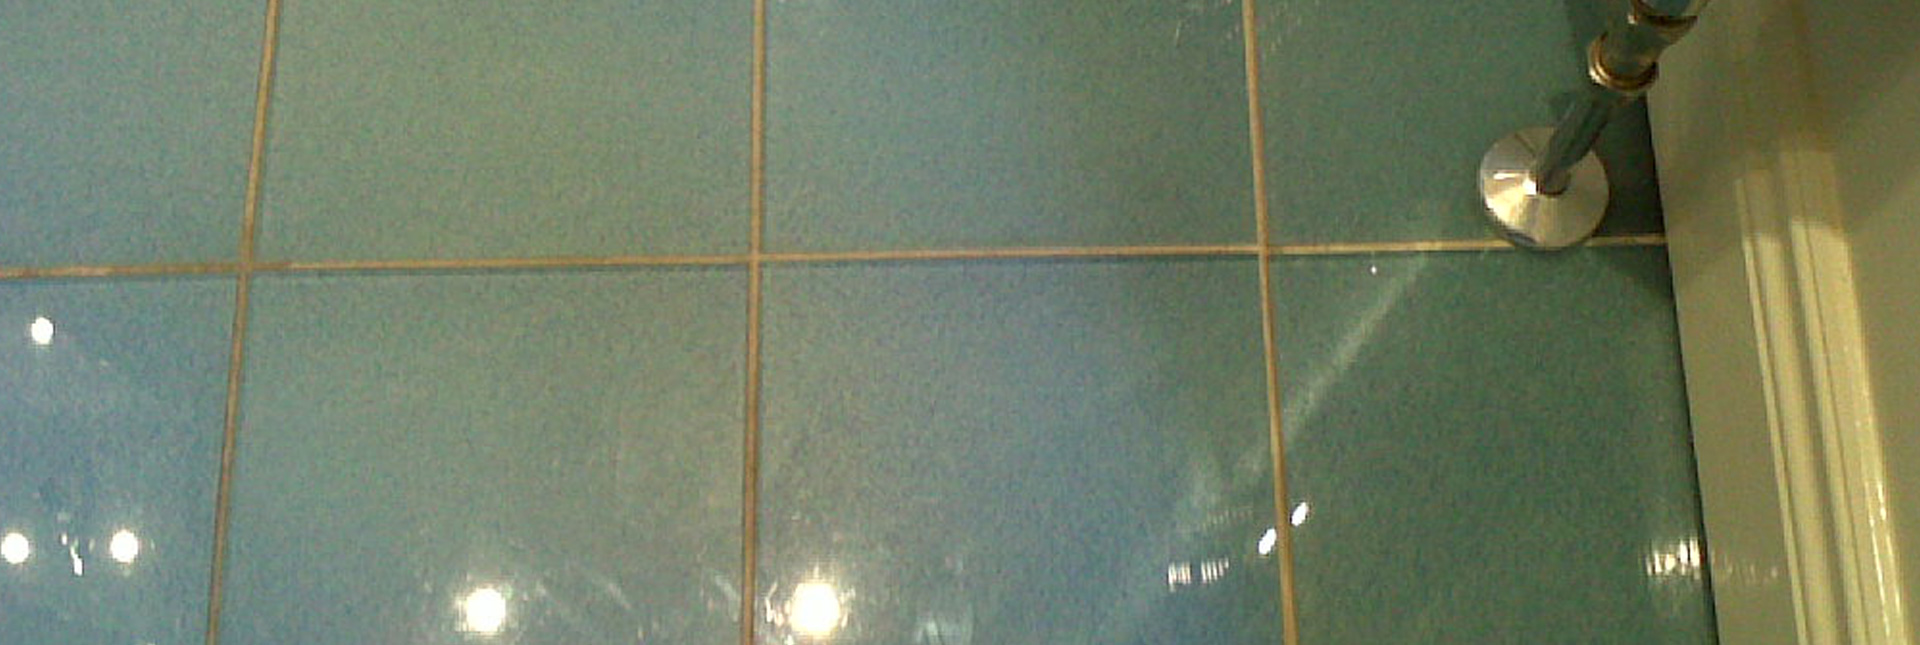 residential-tile-grout-1